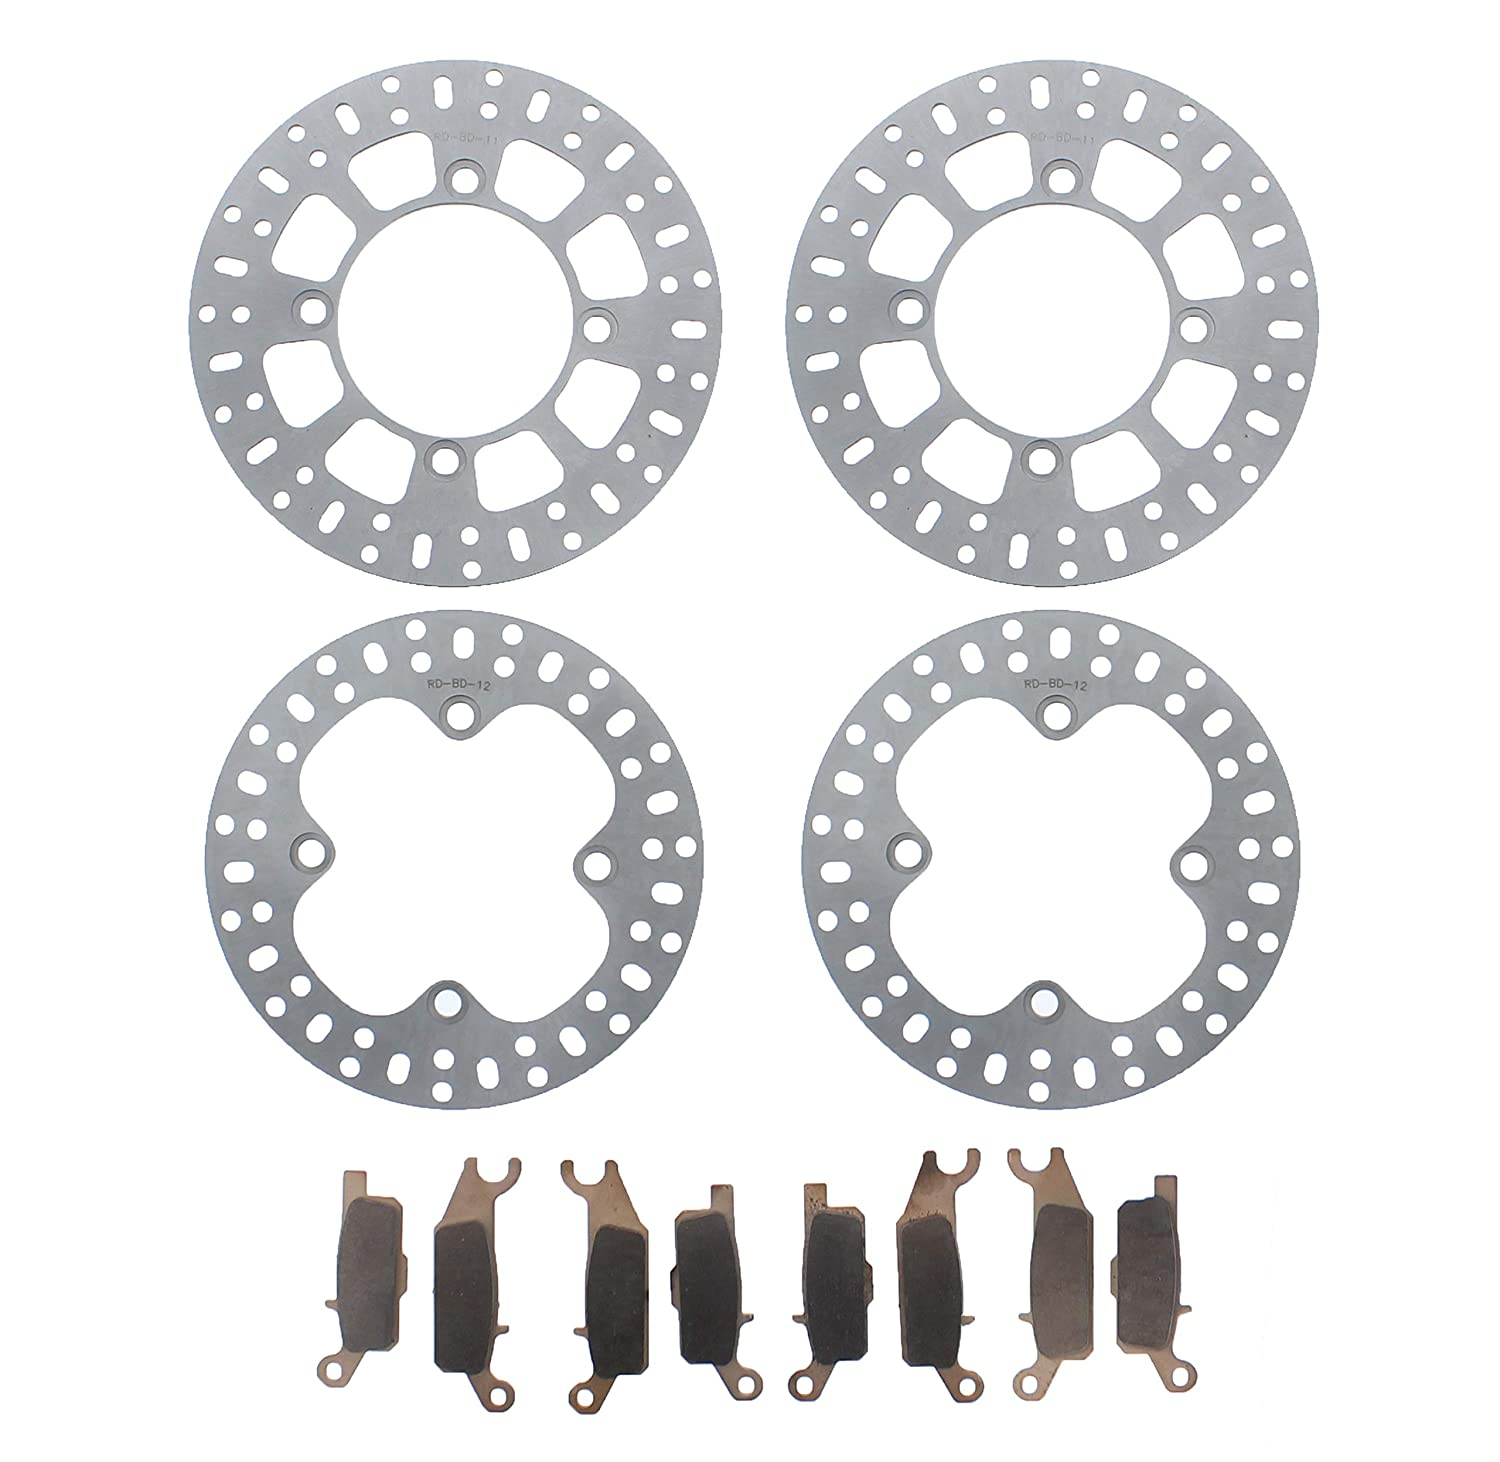 Race Driven Yamaha Front and Rear Brake Rotors and Severe Duty Brake Pads for Grizzly YFM550 YFM700 YFM 550 700 Race-Driven